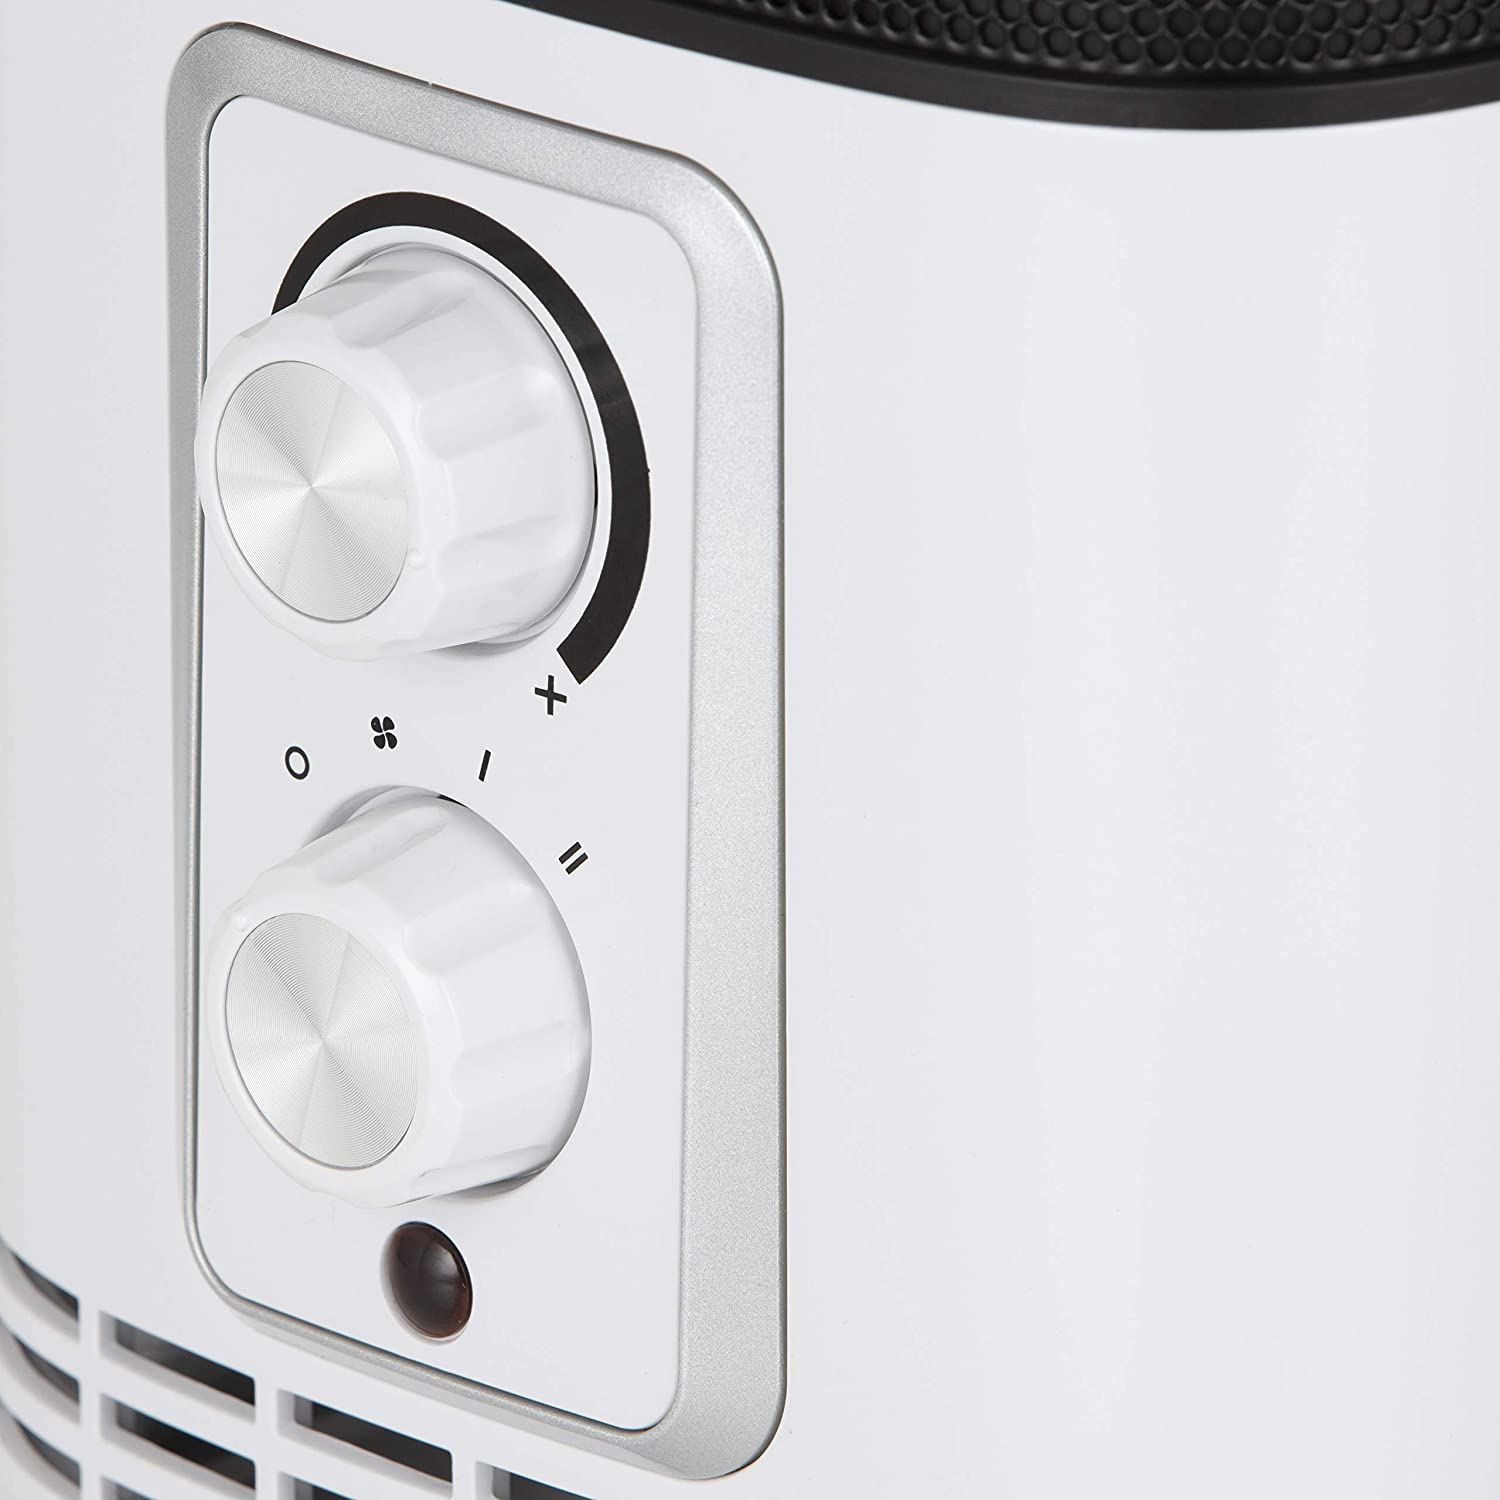 BLACK+DECKER BXSH37001GB Ceramic Lightweight Portable Fan Heater with 360 Degree Distribution and 2 Heat Setting and Cool Air Blow Function White 1500 W